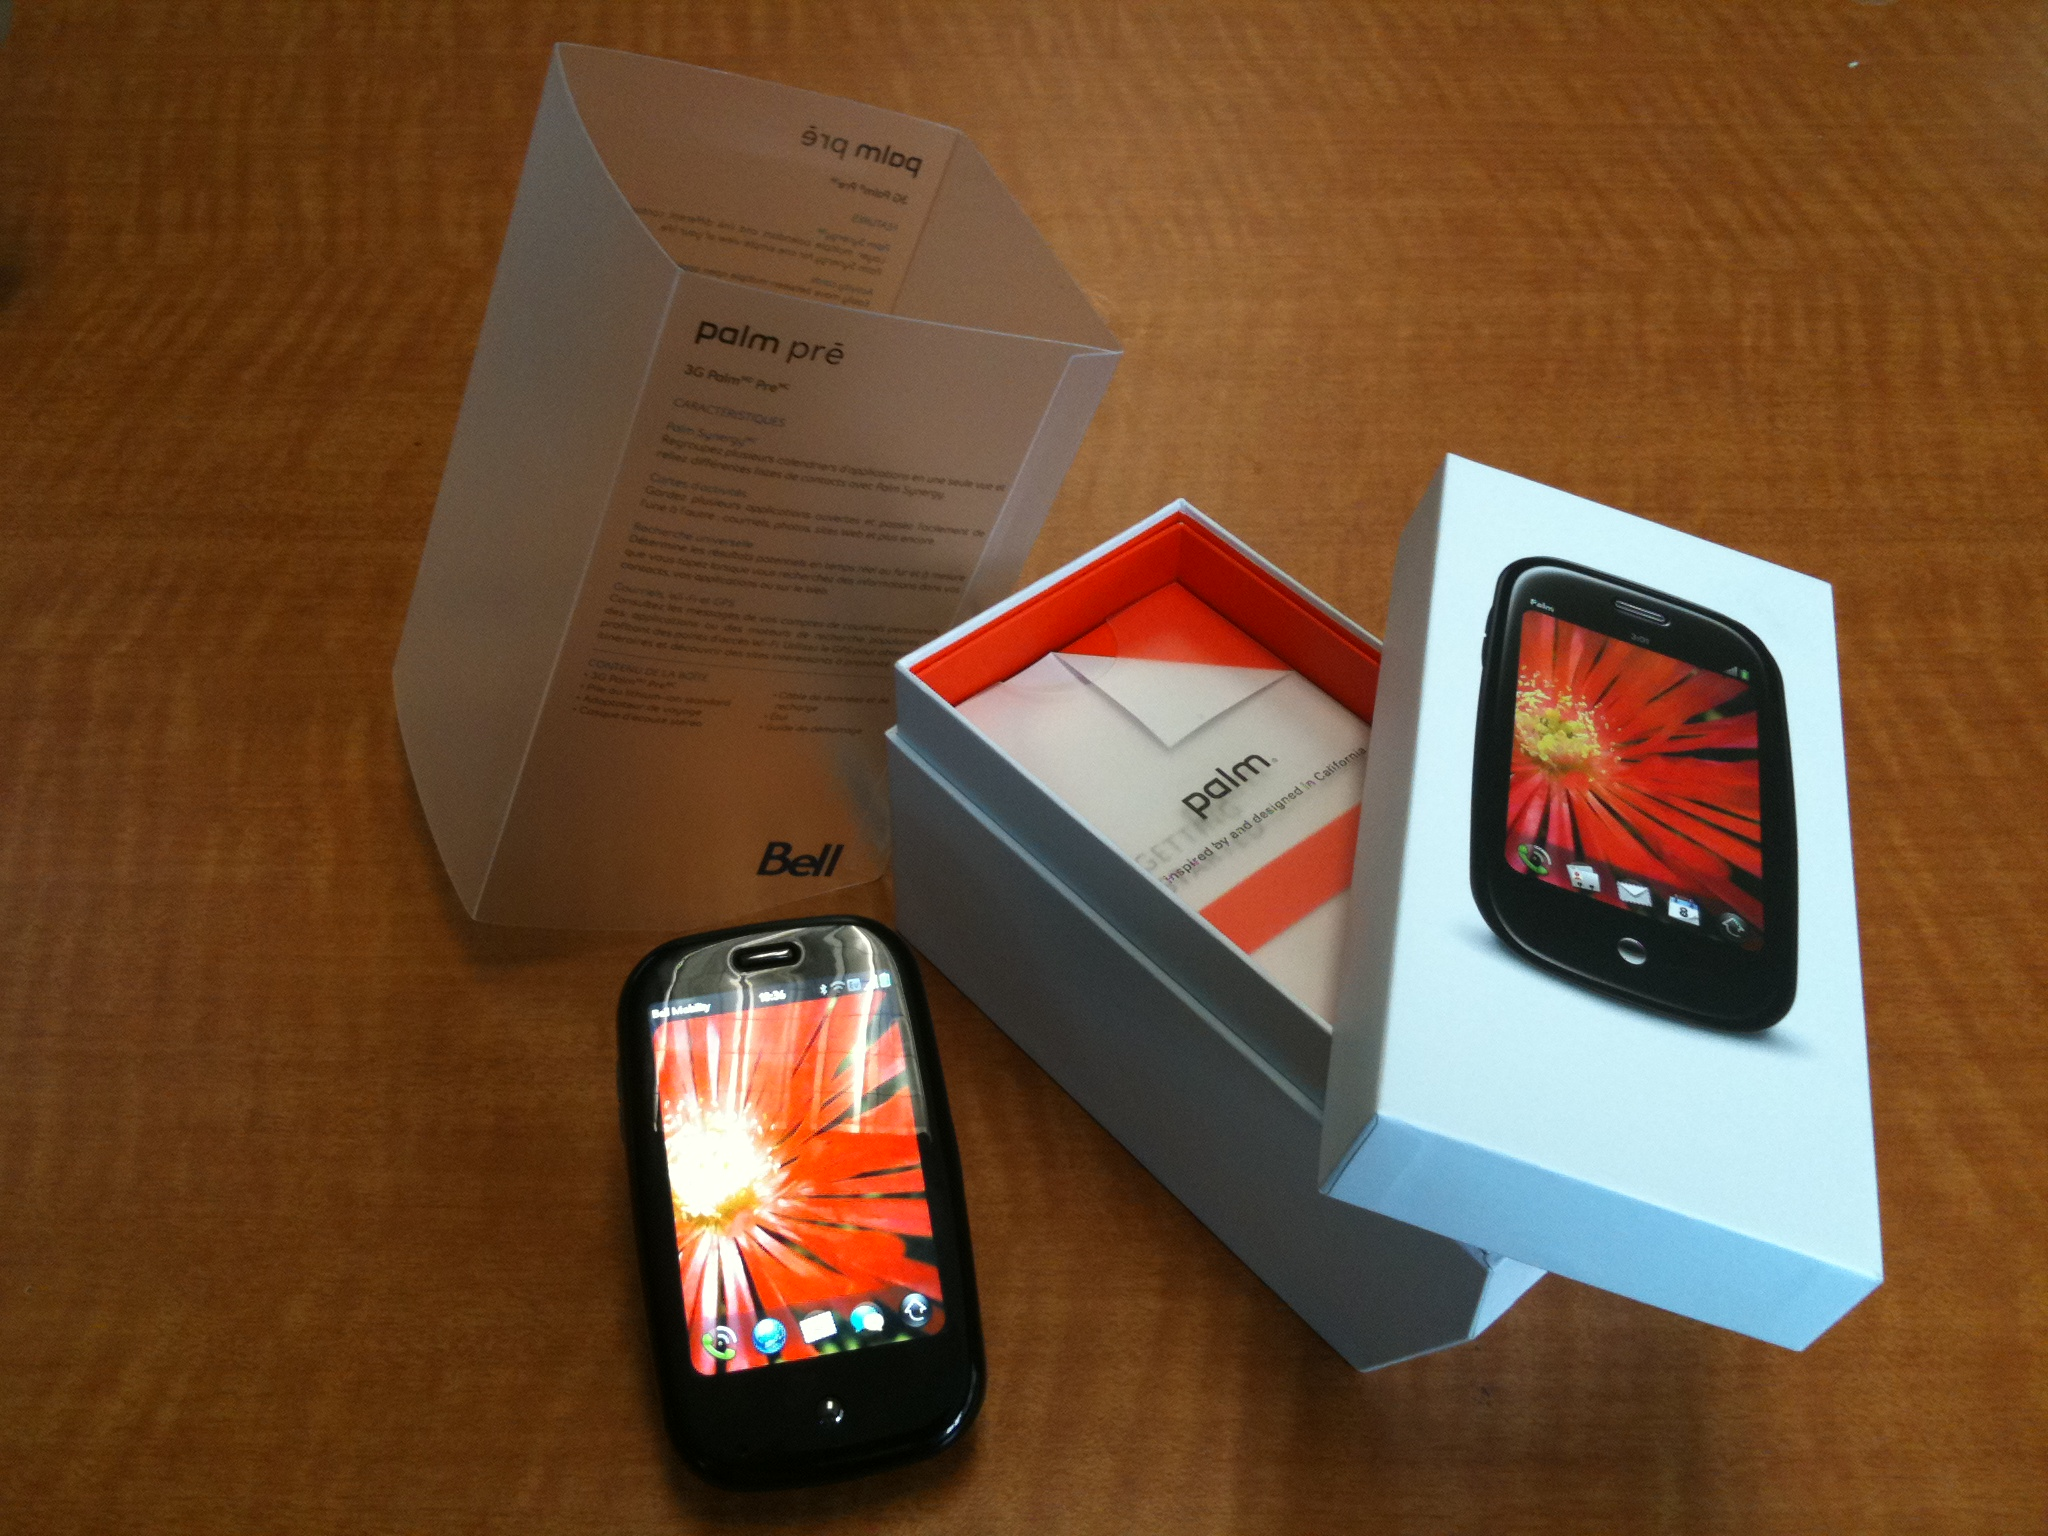 The Palm Pre and its well-designed packaging.